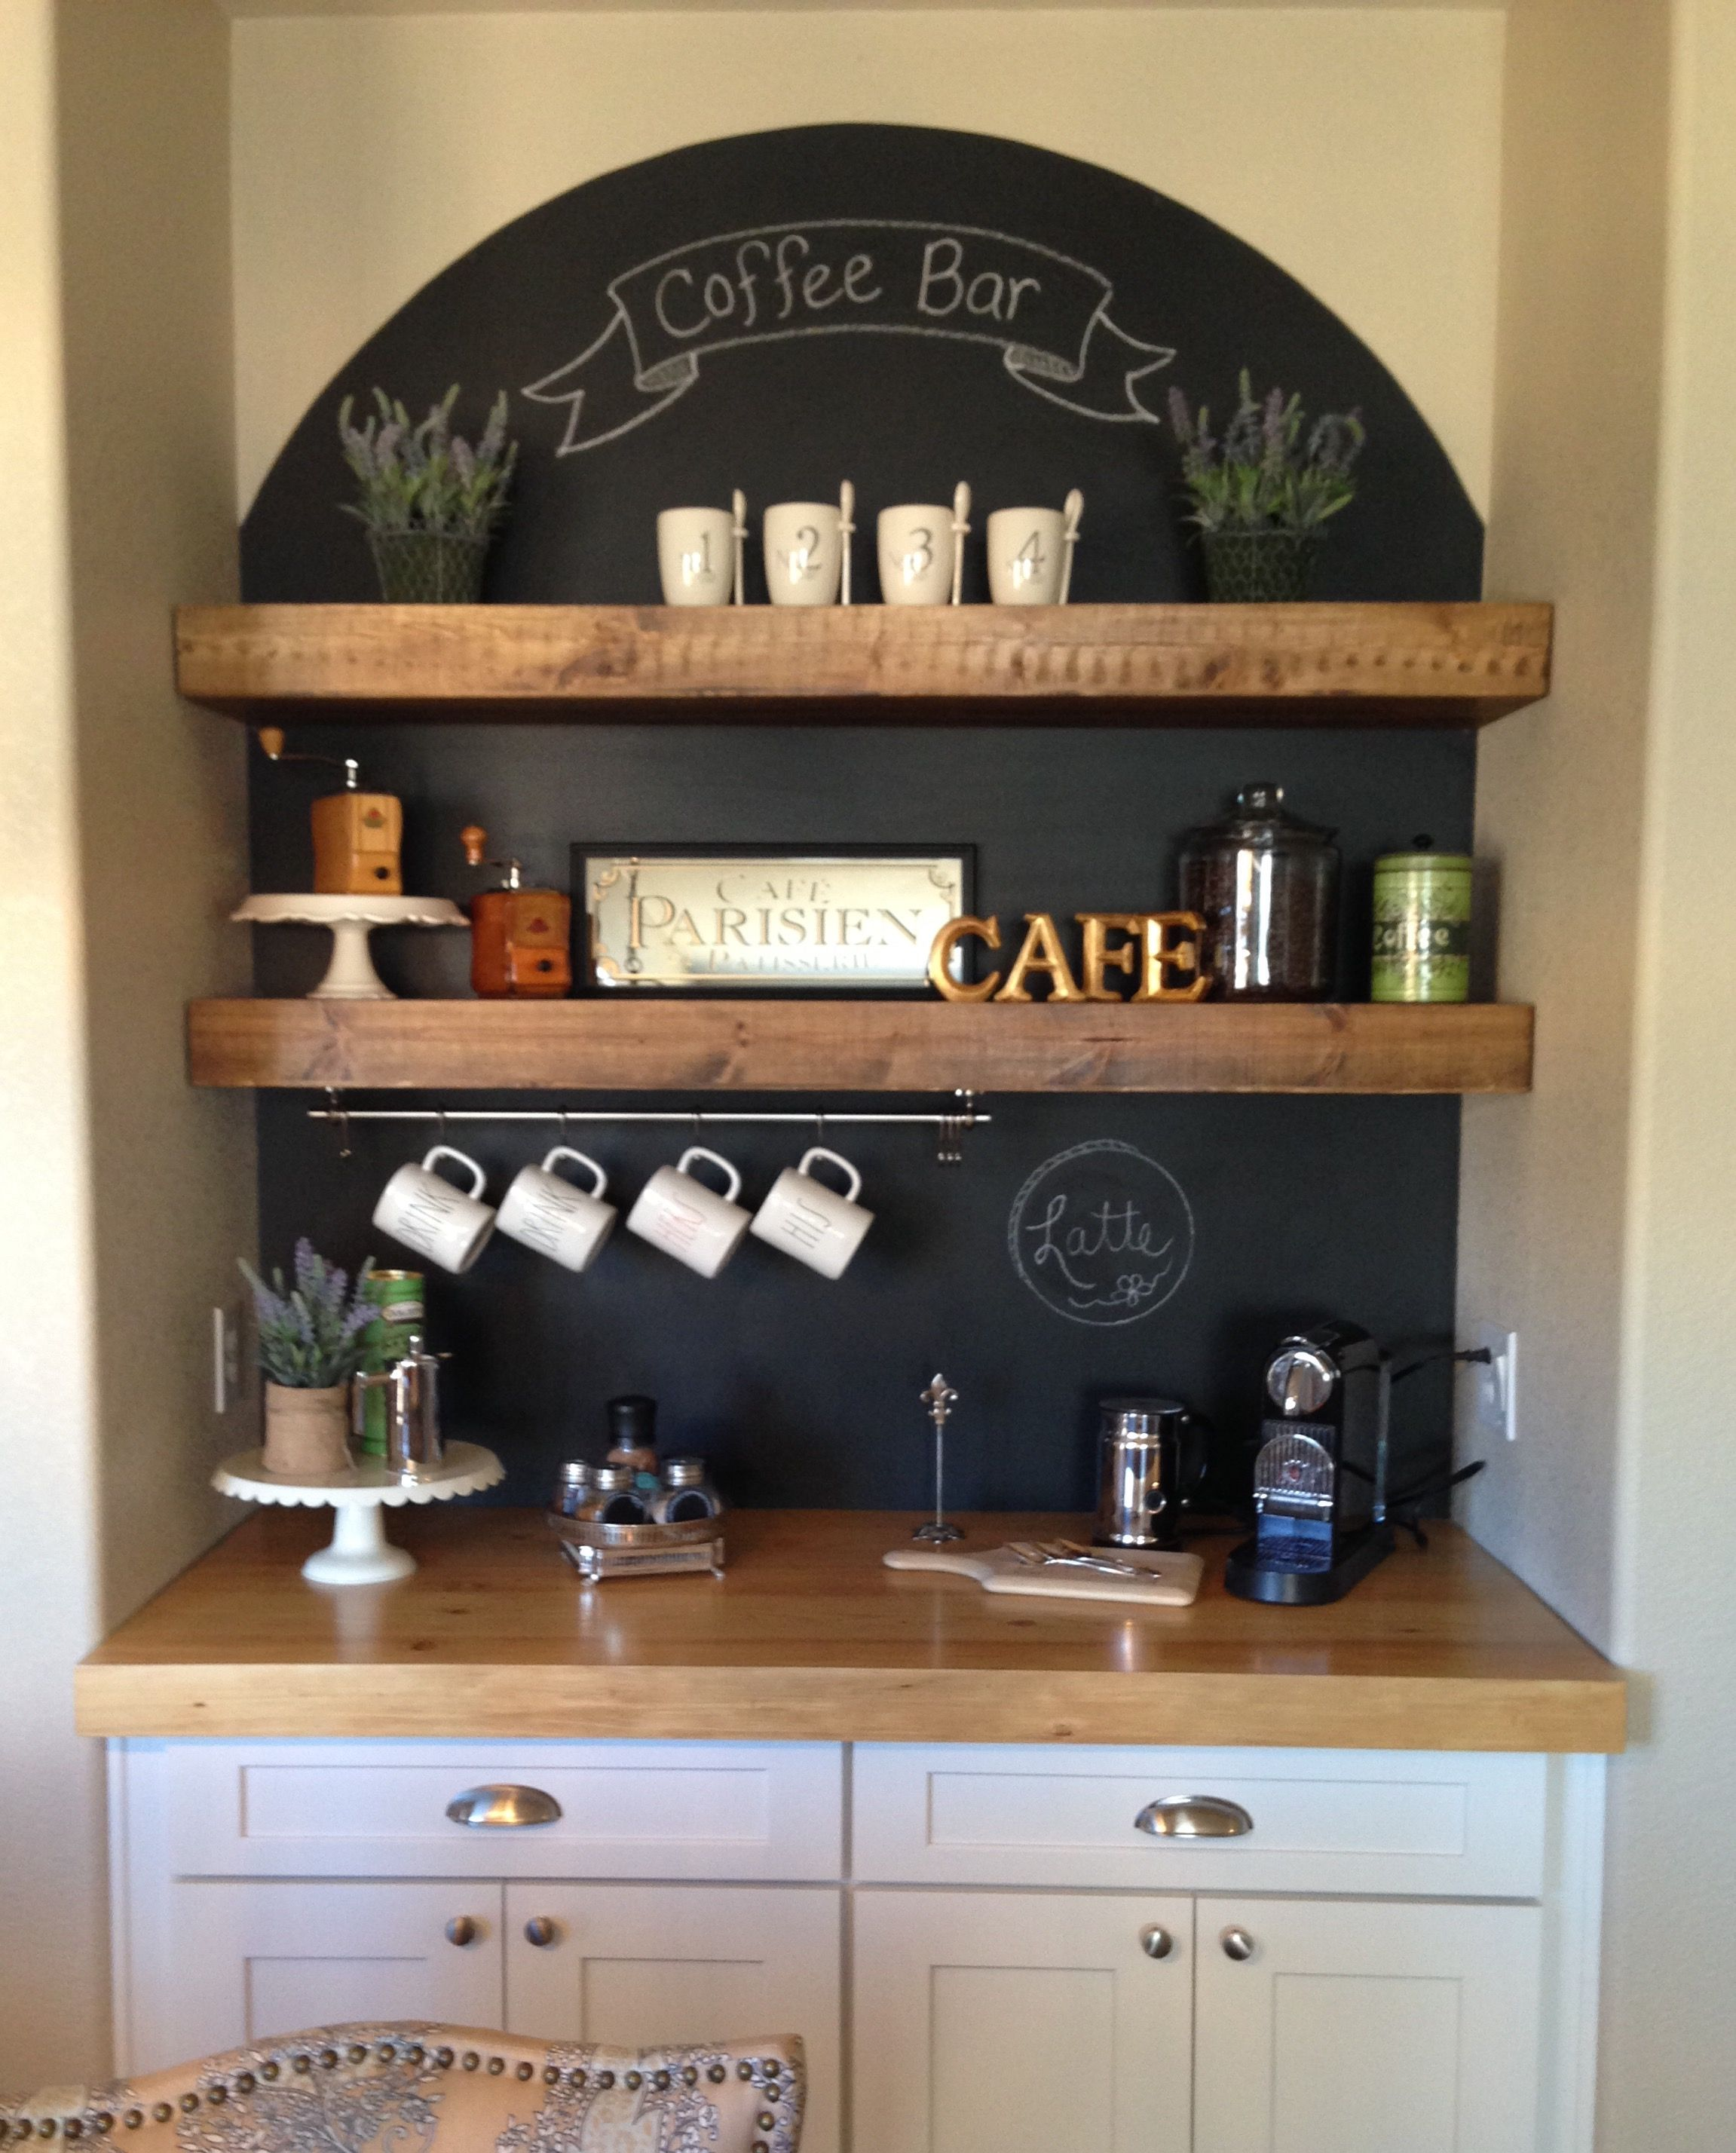 25+ DIY Coffee Bar Ideas For Your Home (Stunning Pictures